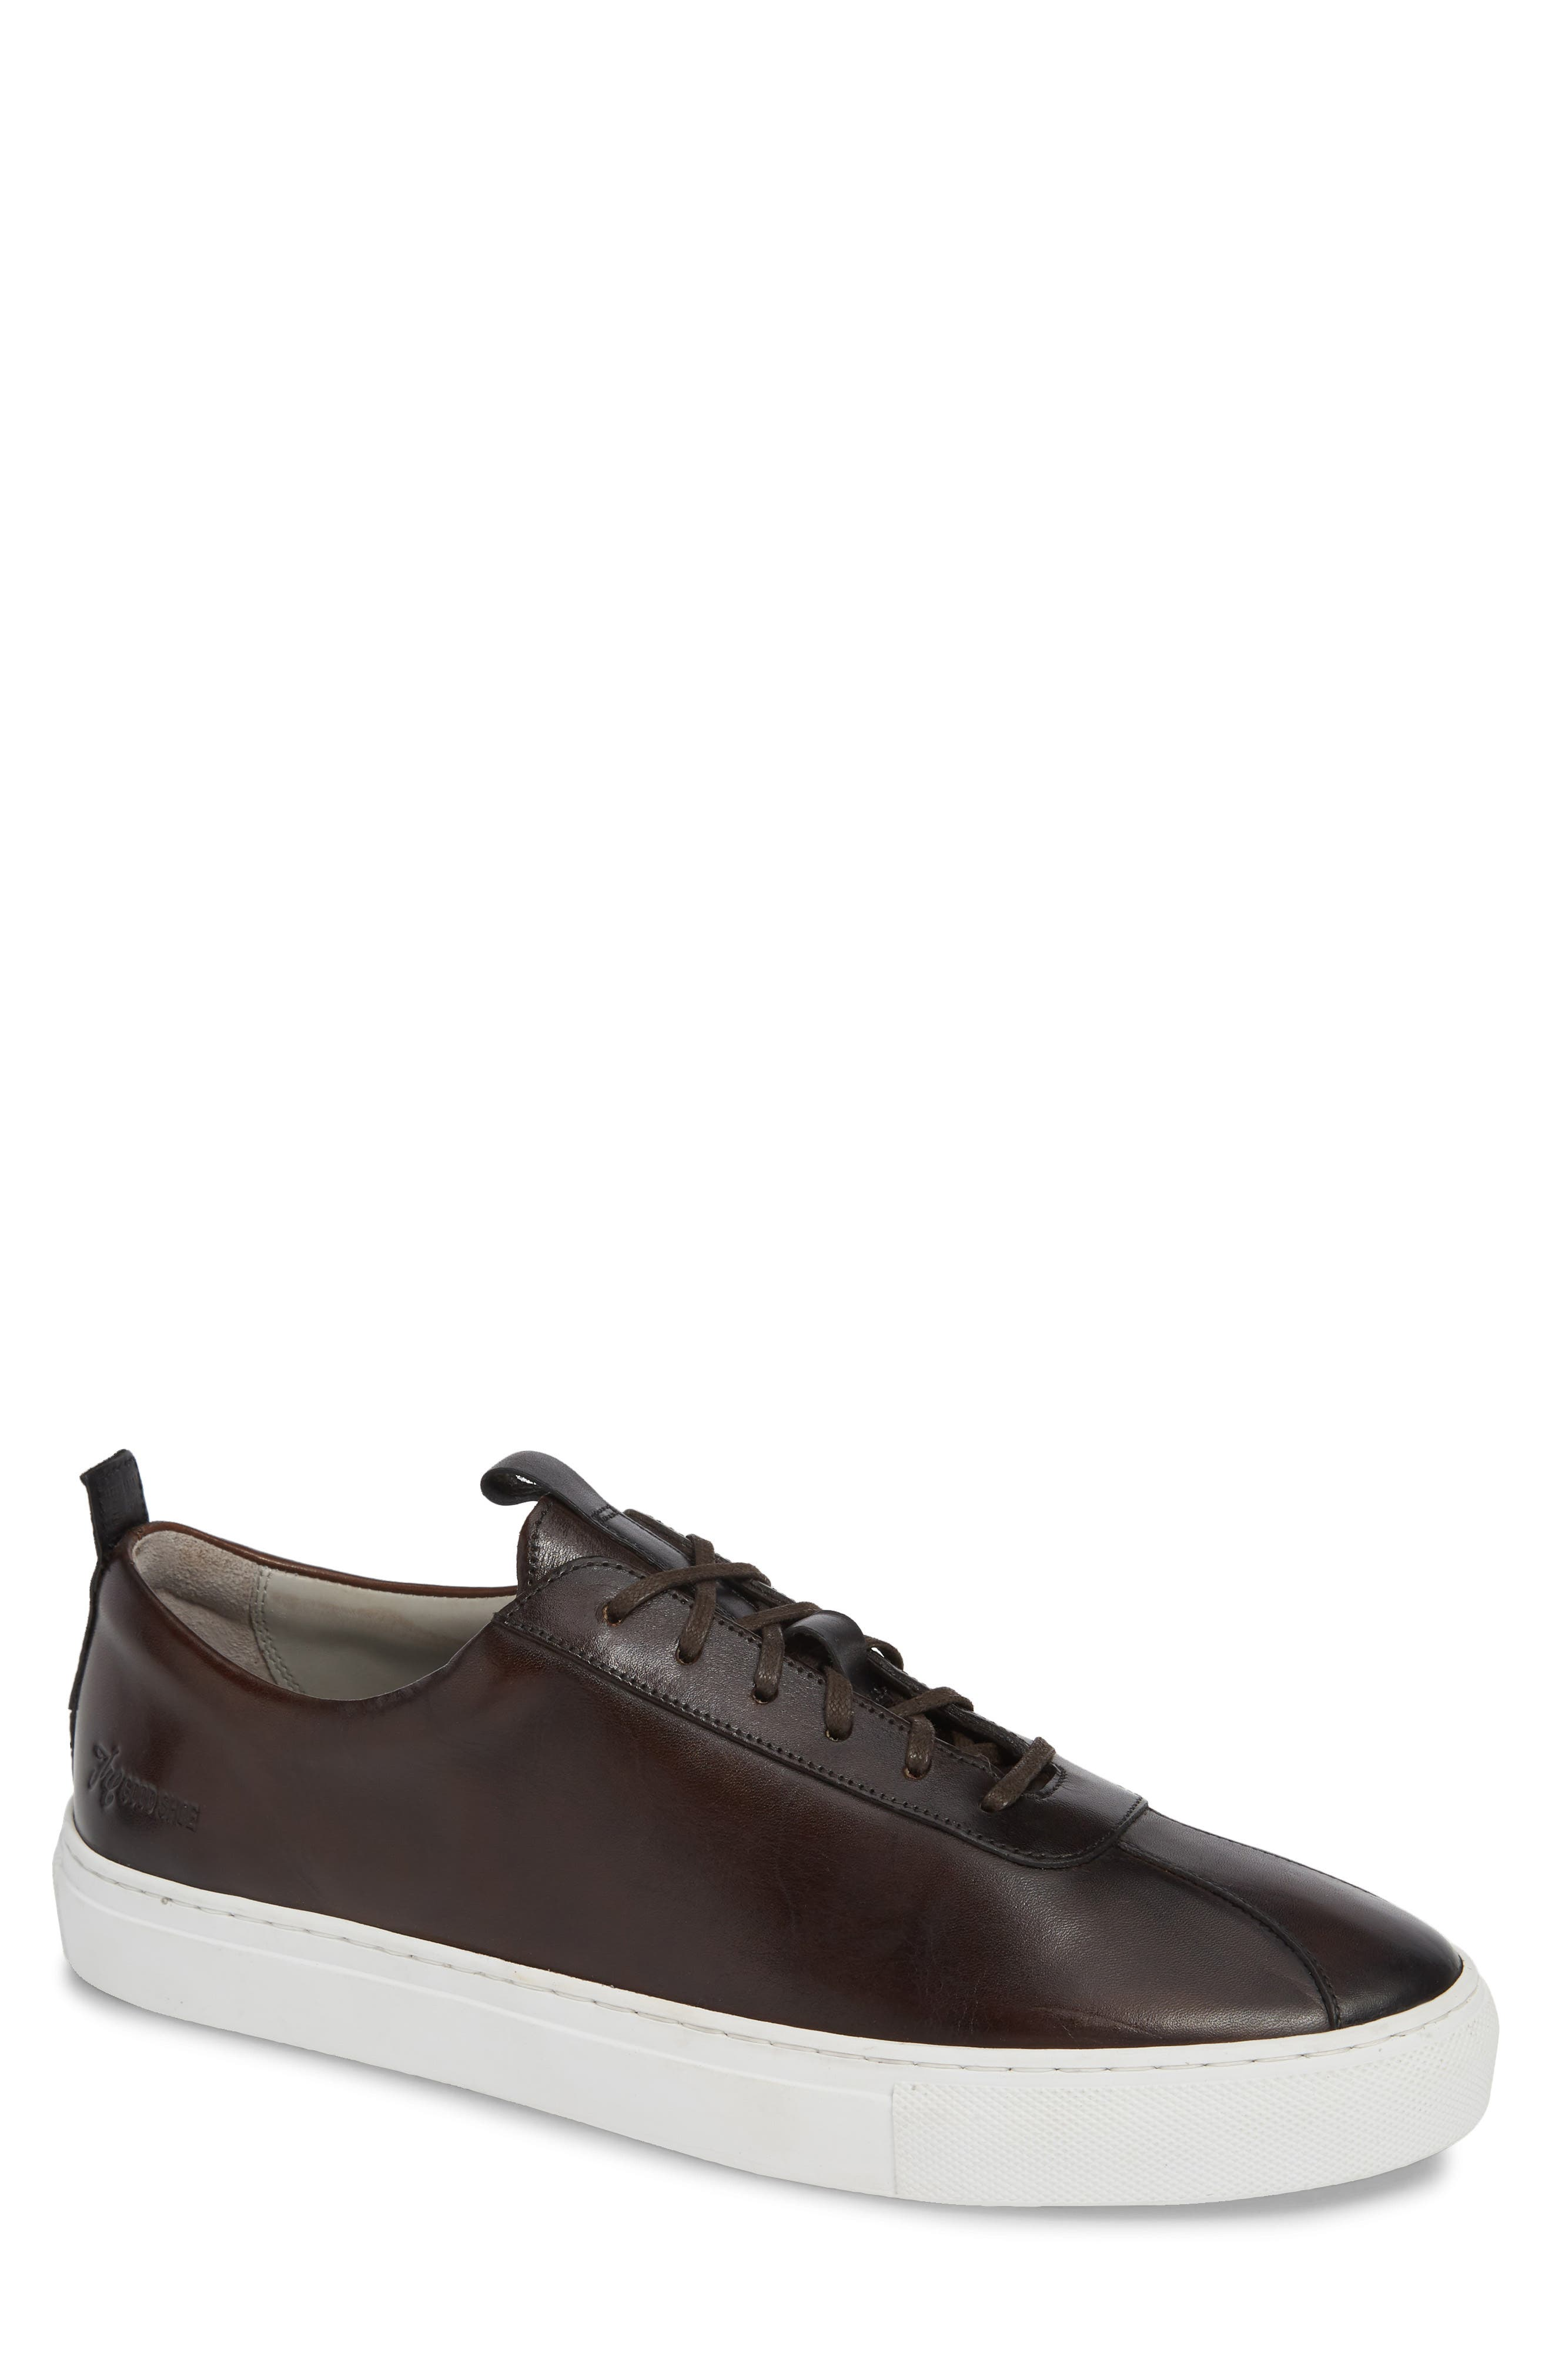 GRENSON Low Top Sneaker, Main, color, BROWN HAND PAINTED